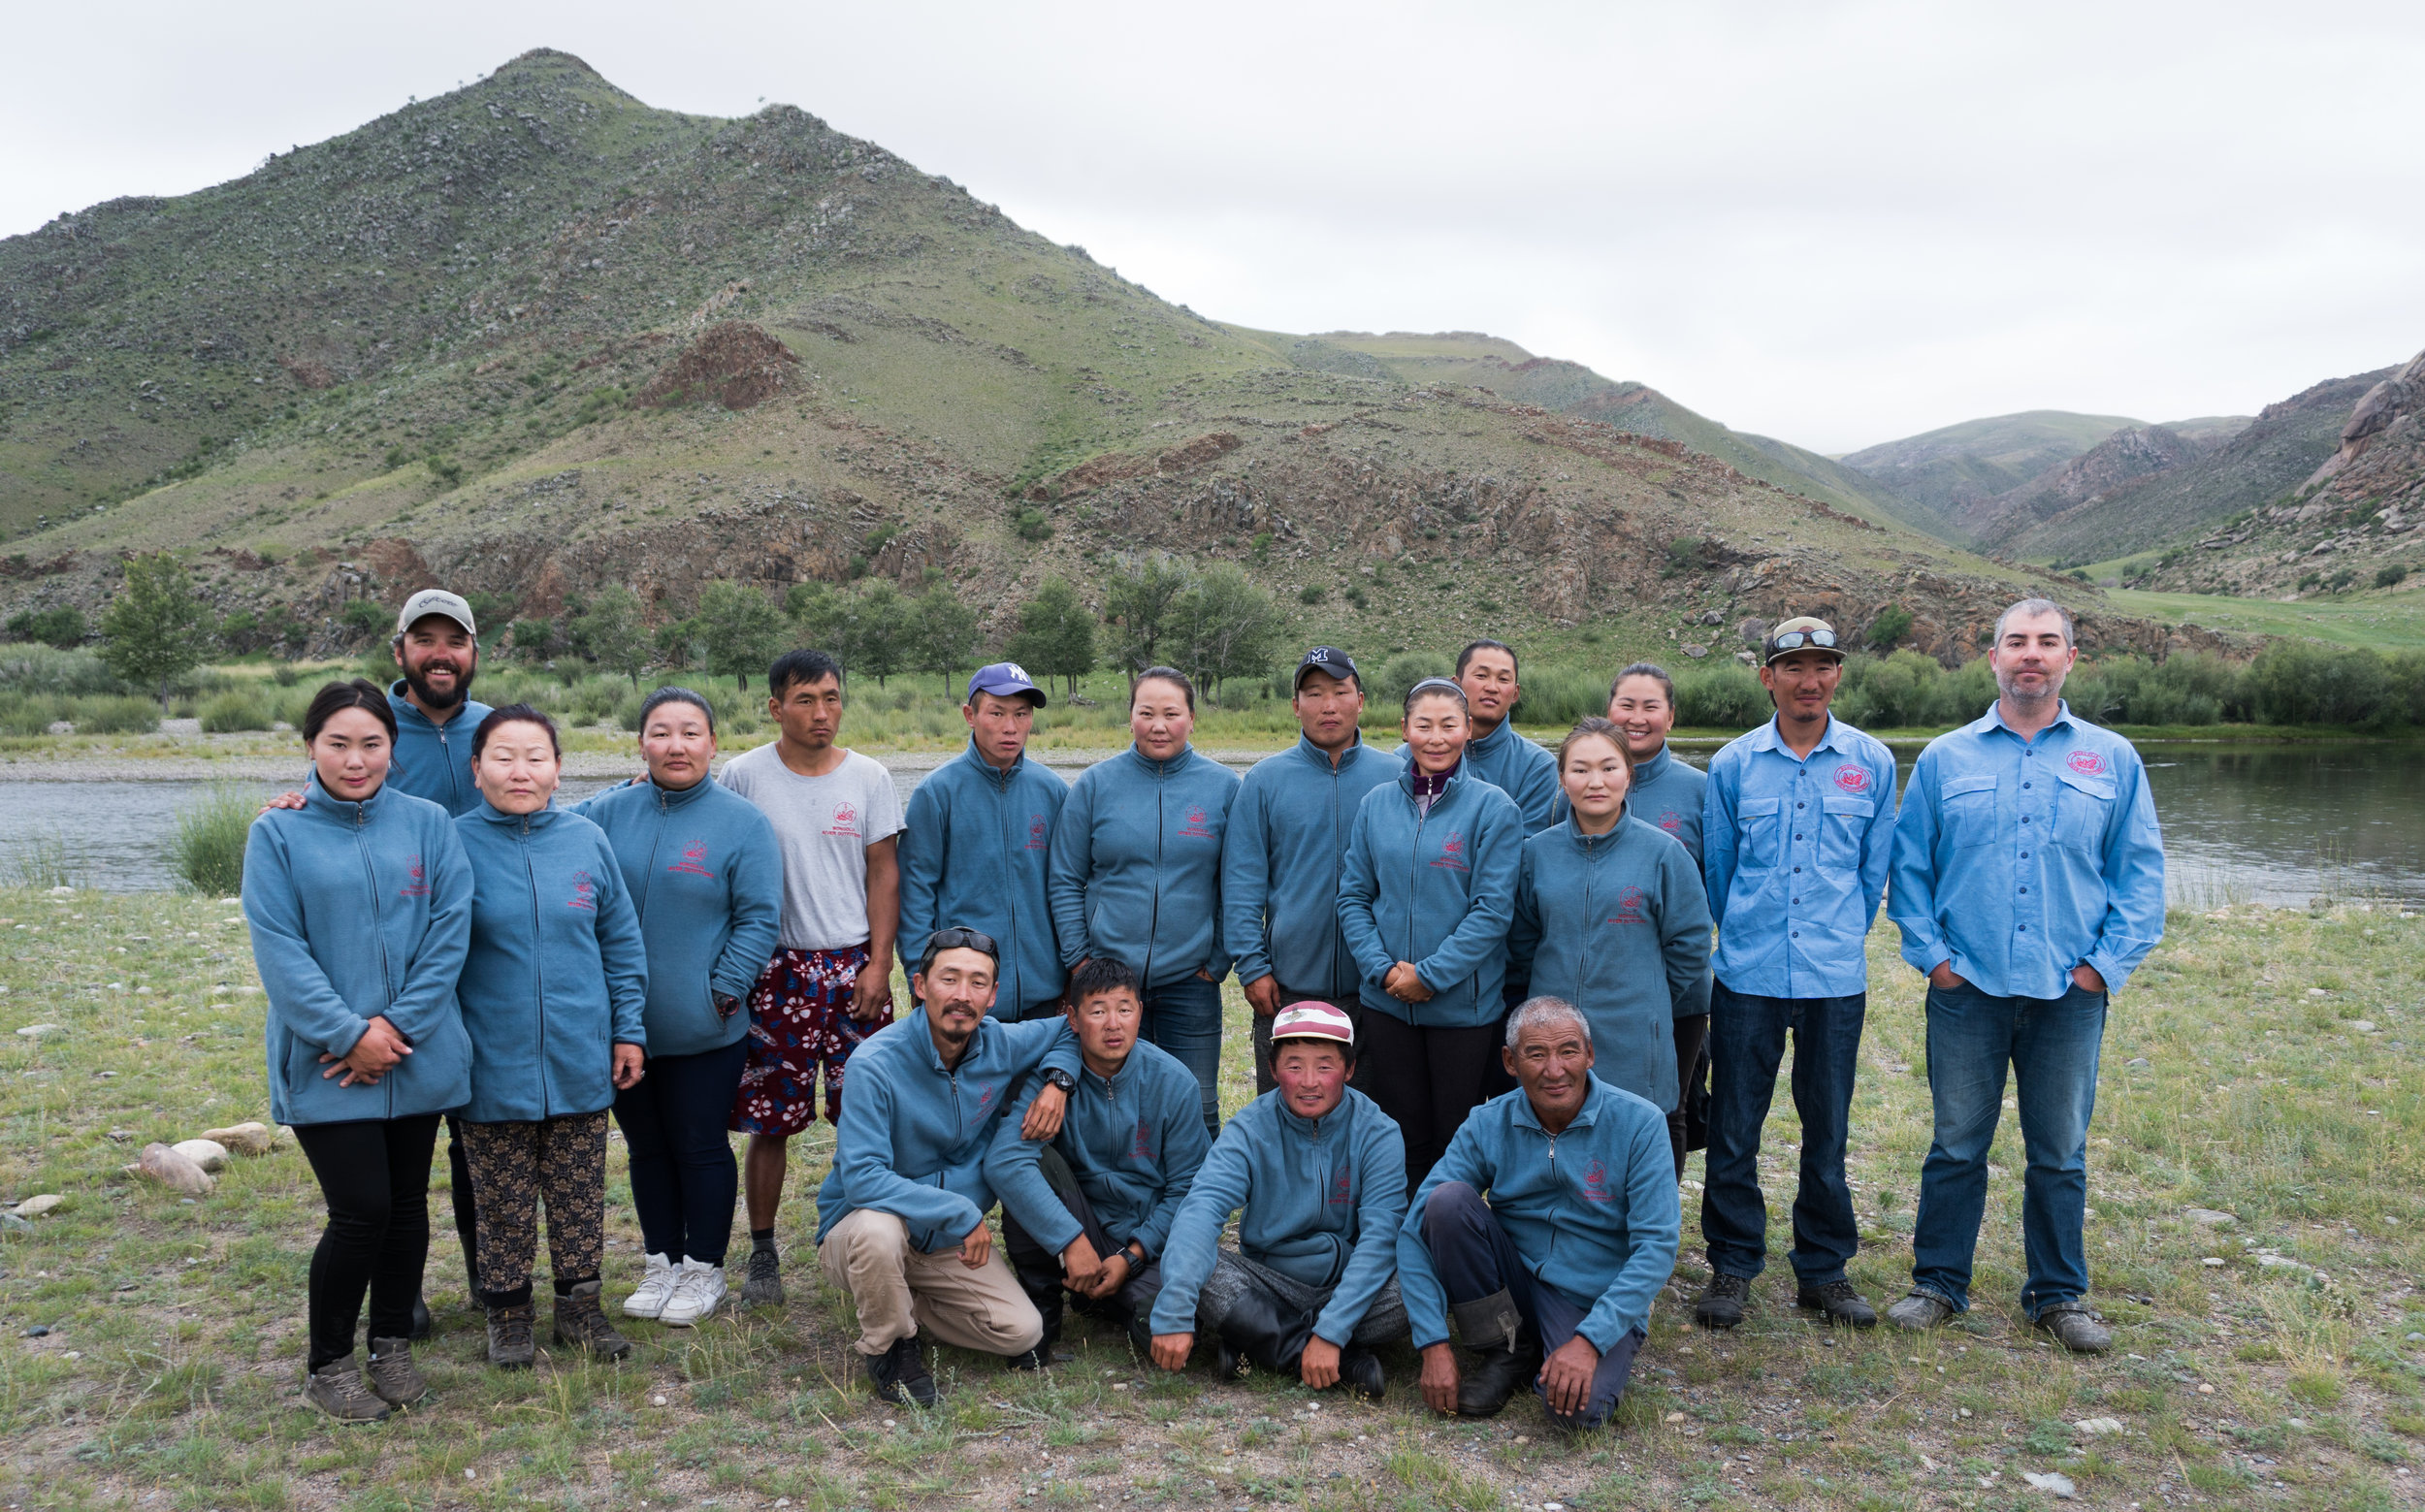 Fish Mongolia camp staff and guides